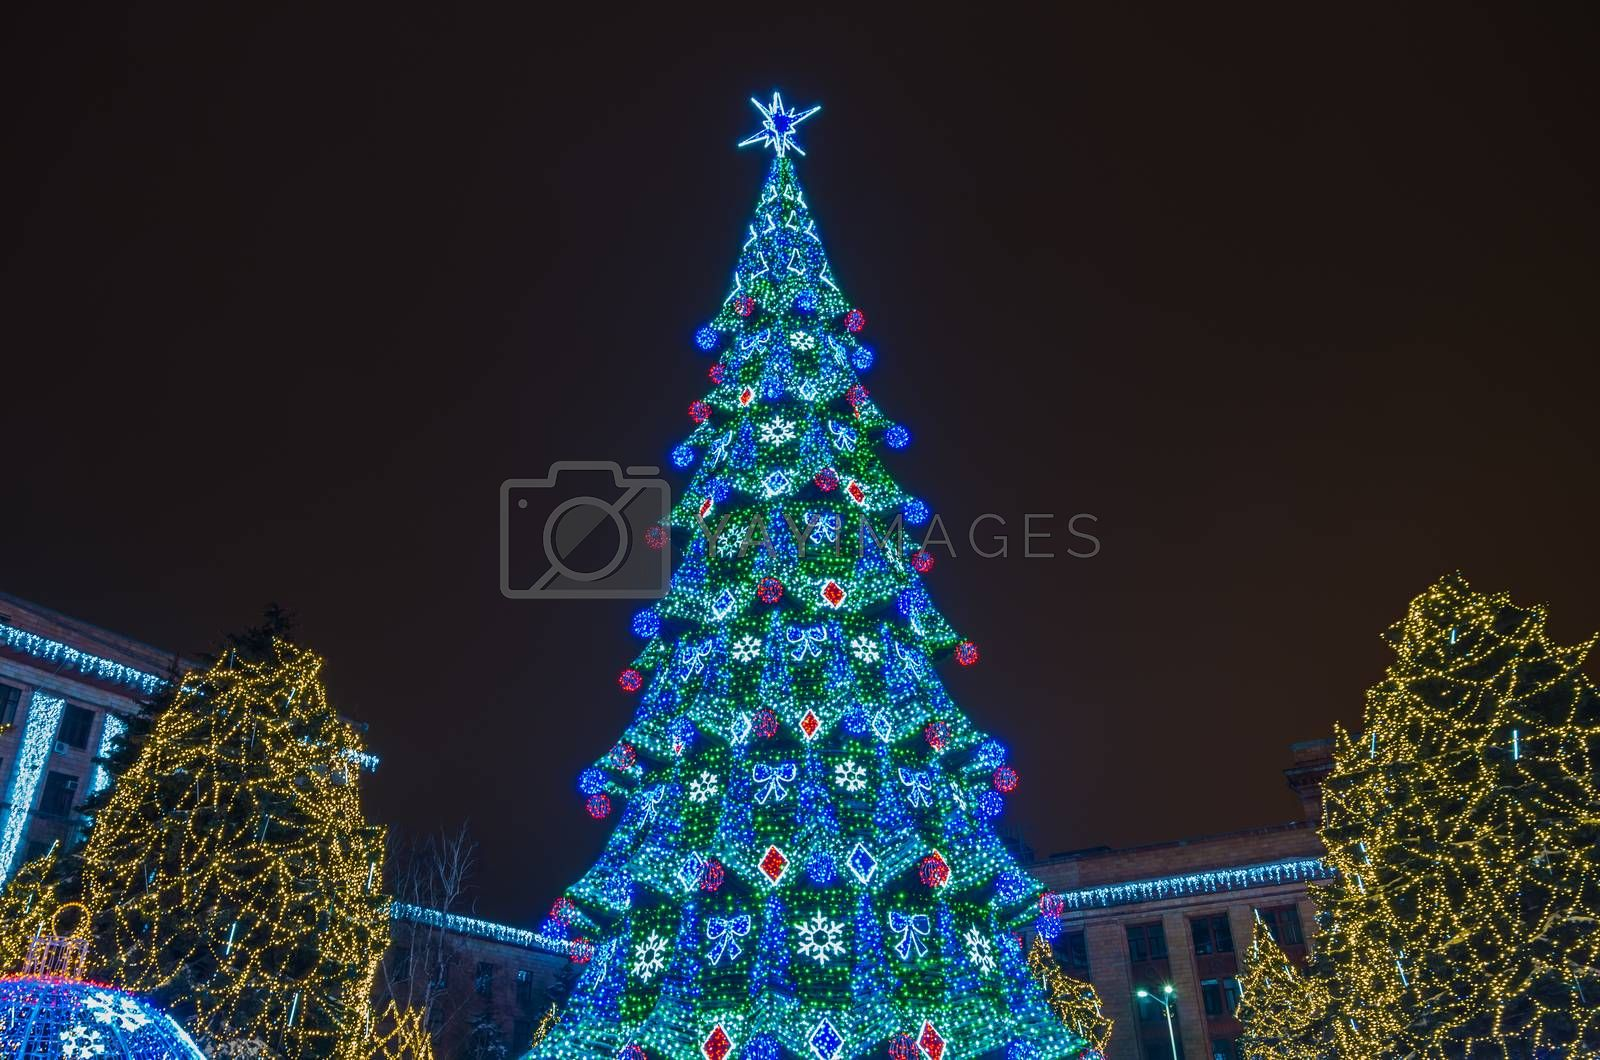 Lighted Christmas tree in night city park in 2015.